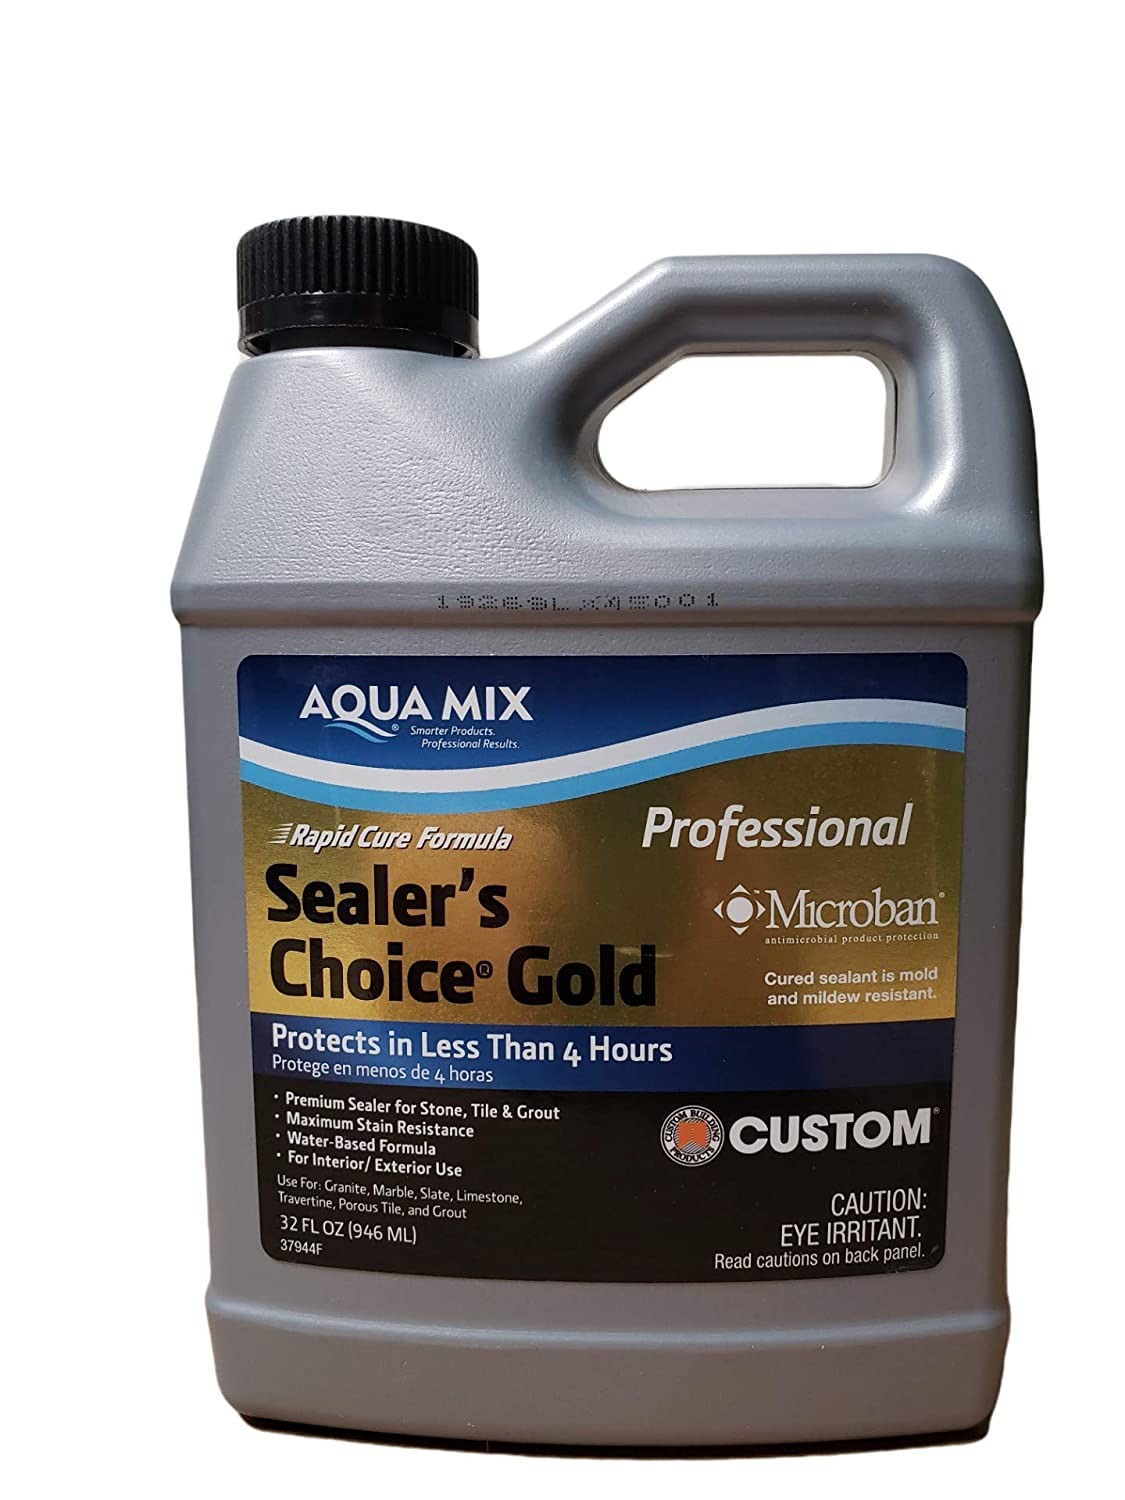 2.Aqua Mix Sealer's Choice Gold Quart